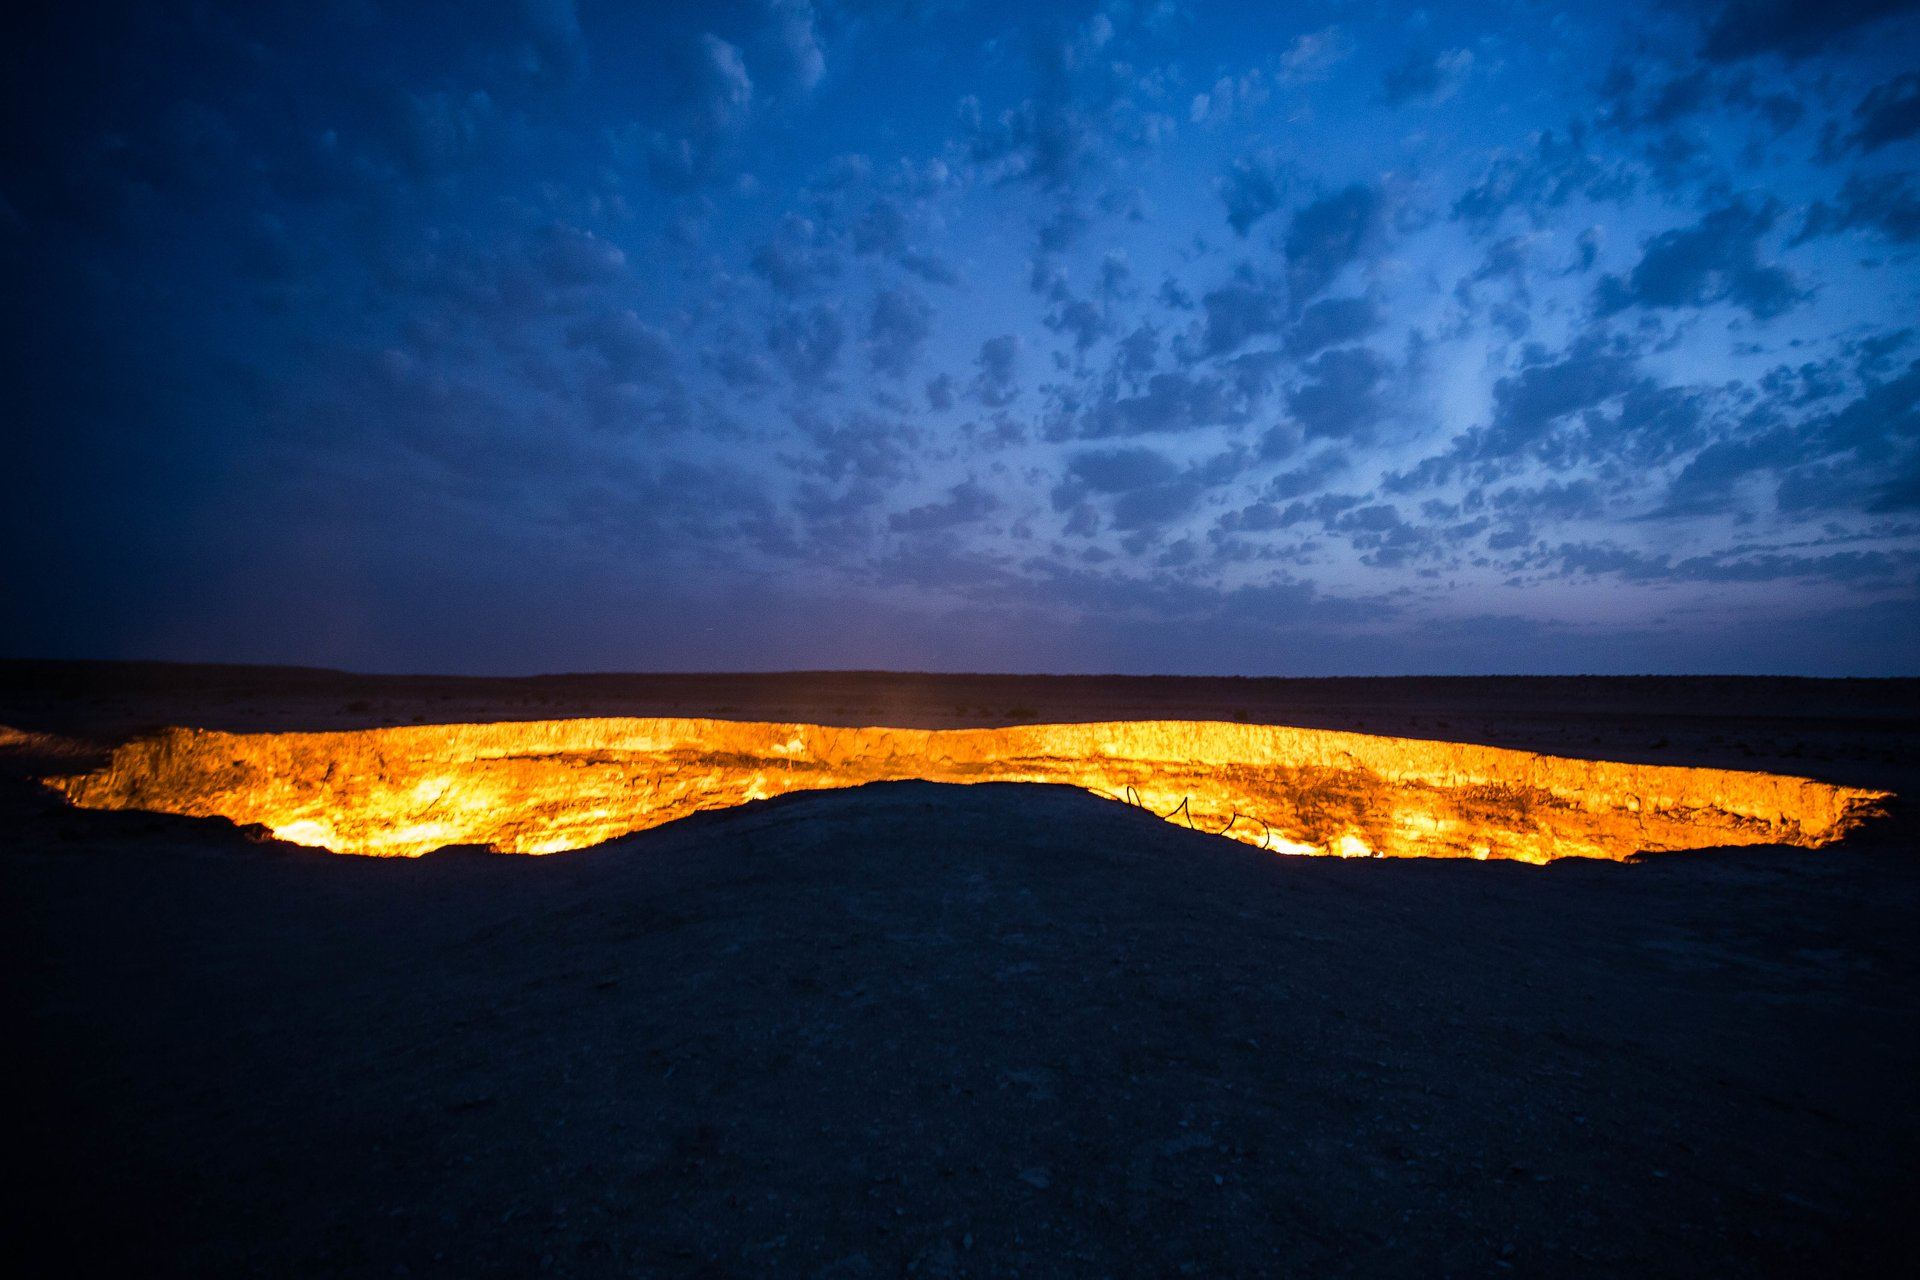 Best time to see The Gates of Hell (Darvaza Gas Crater) in Turkmenistan 2020